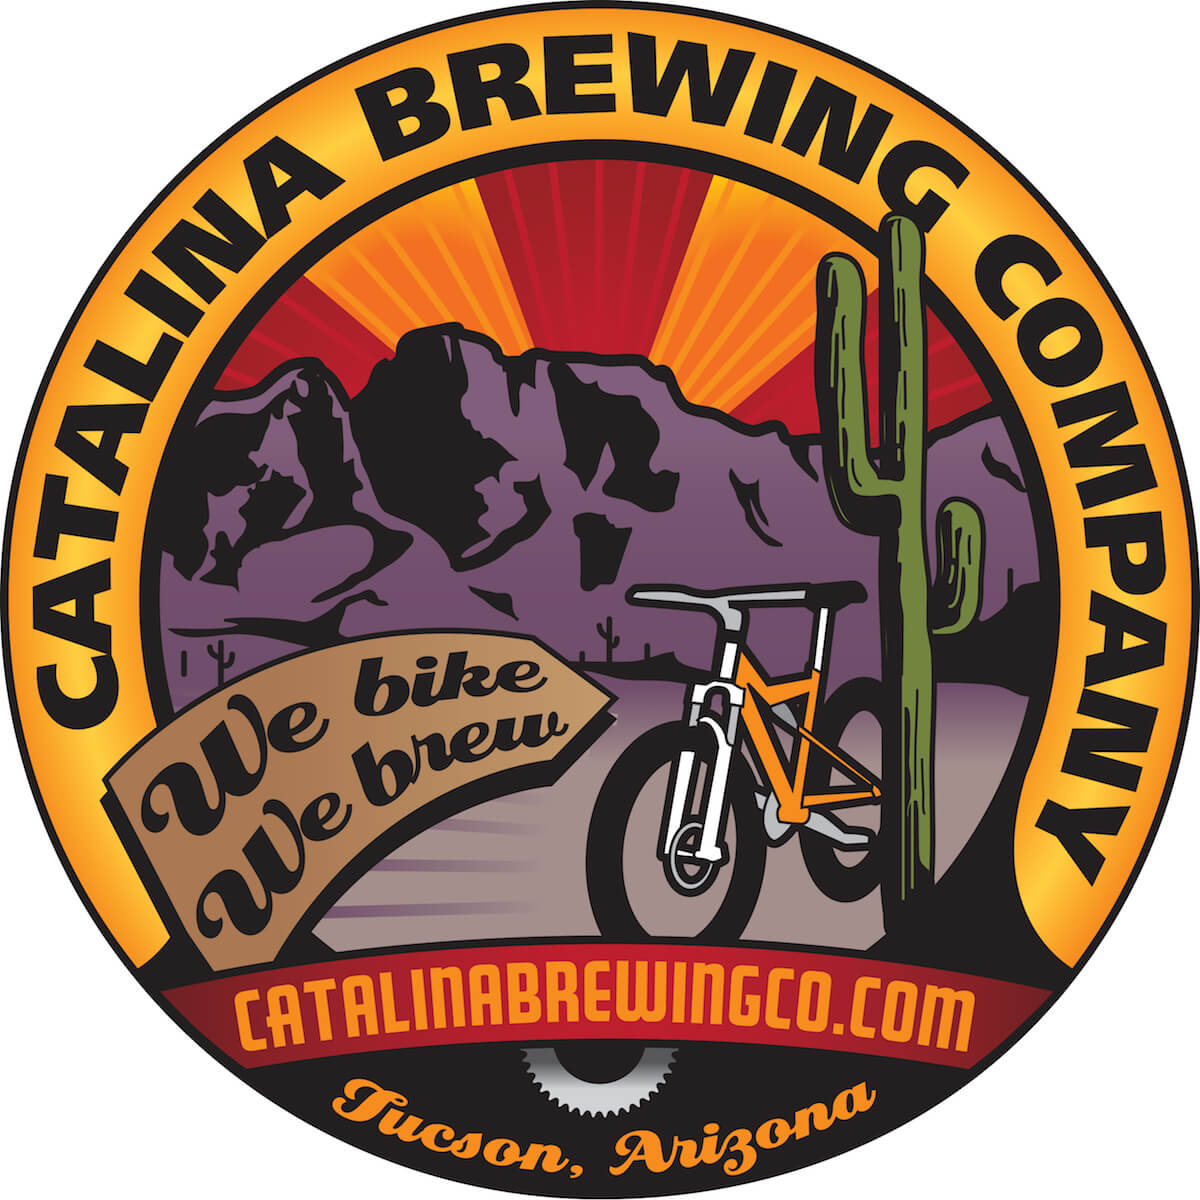 Catalina Brewing Co